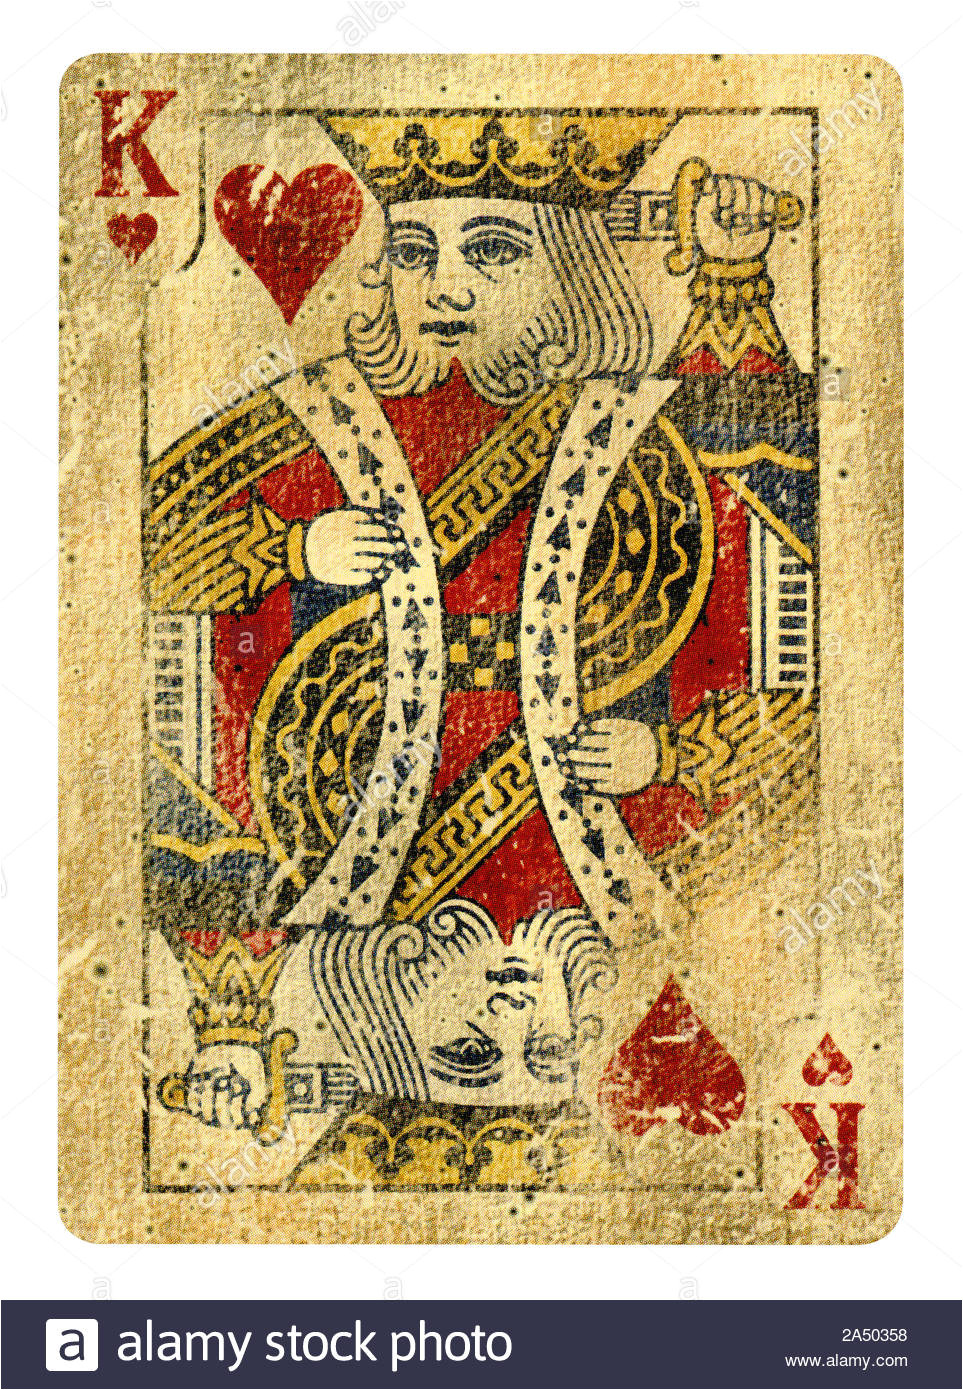 king of hearts playing card isolated on white clipping path included 2a50358 jpg